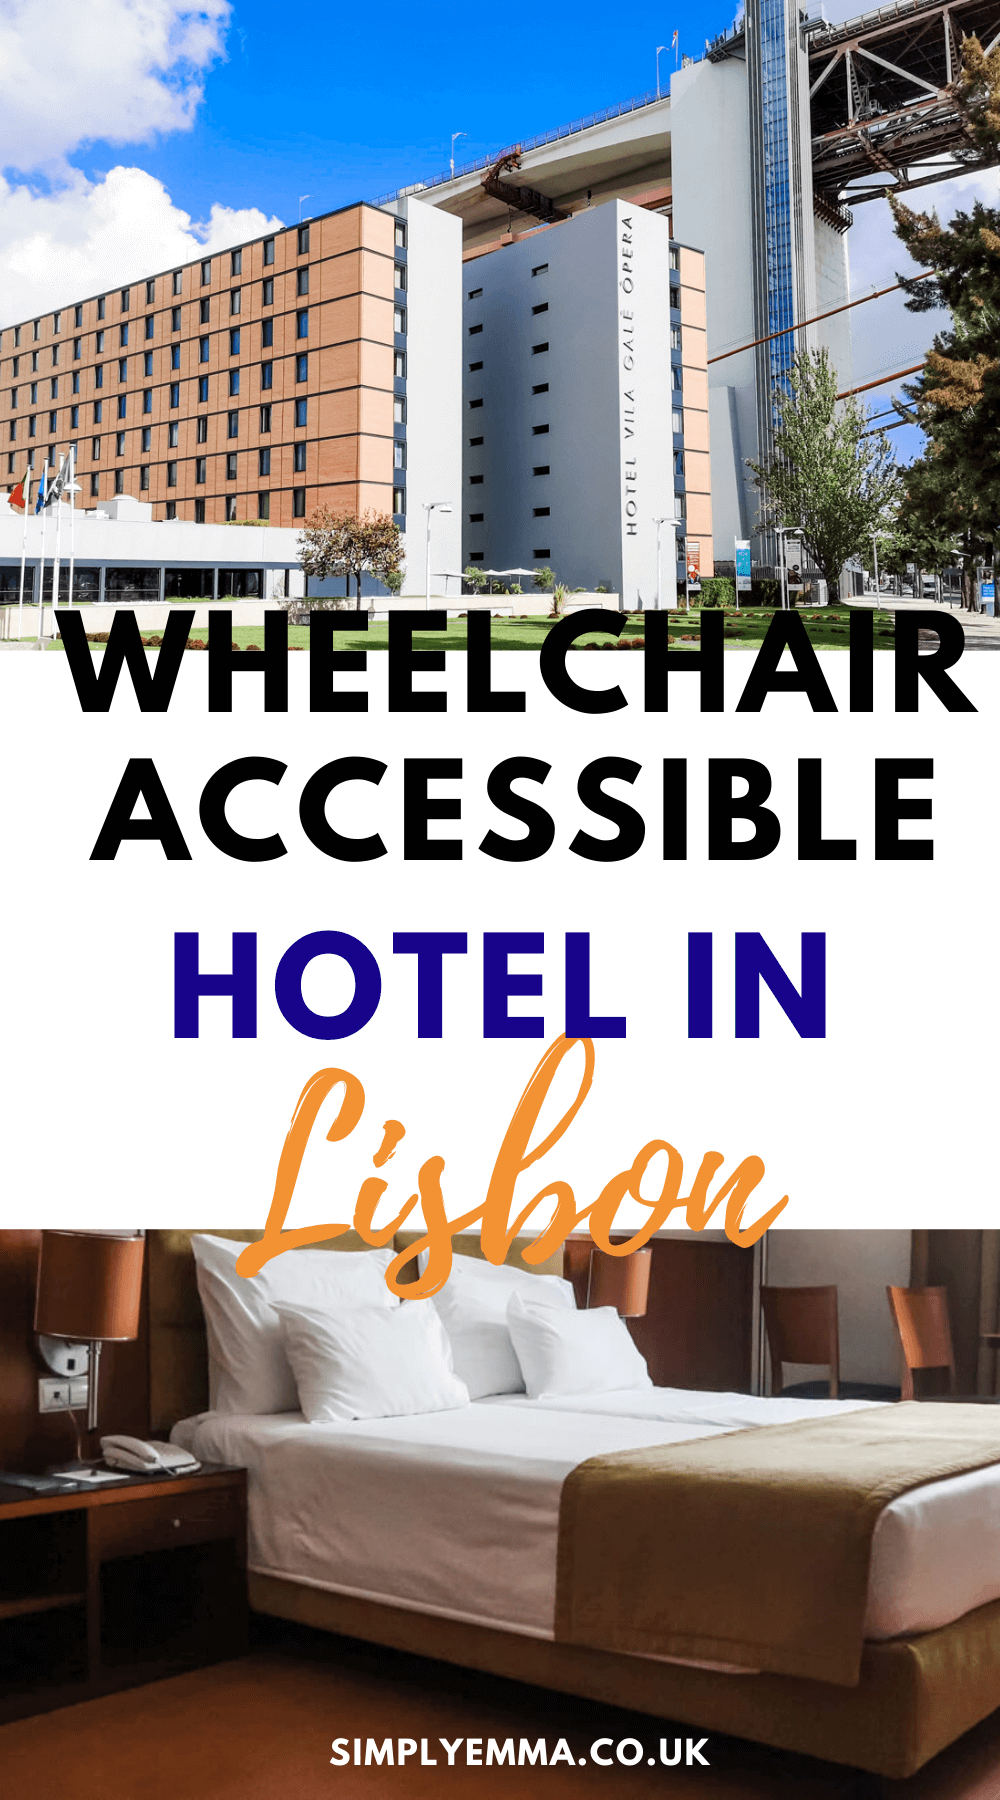 """Wheelchair accessible hotel in Lisbon"" in a text box with an image of the hotel exterior and the bedroom."